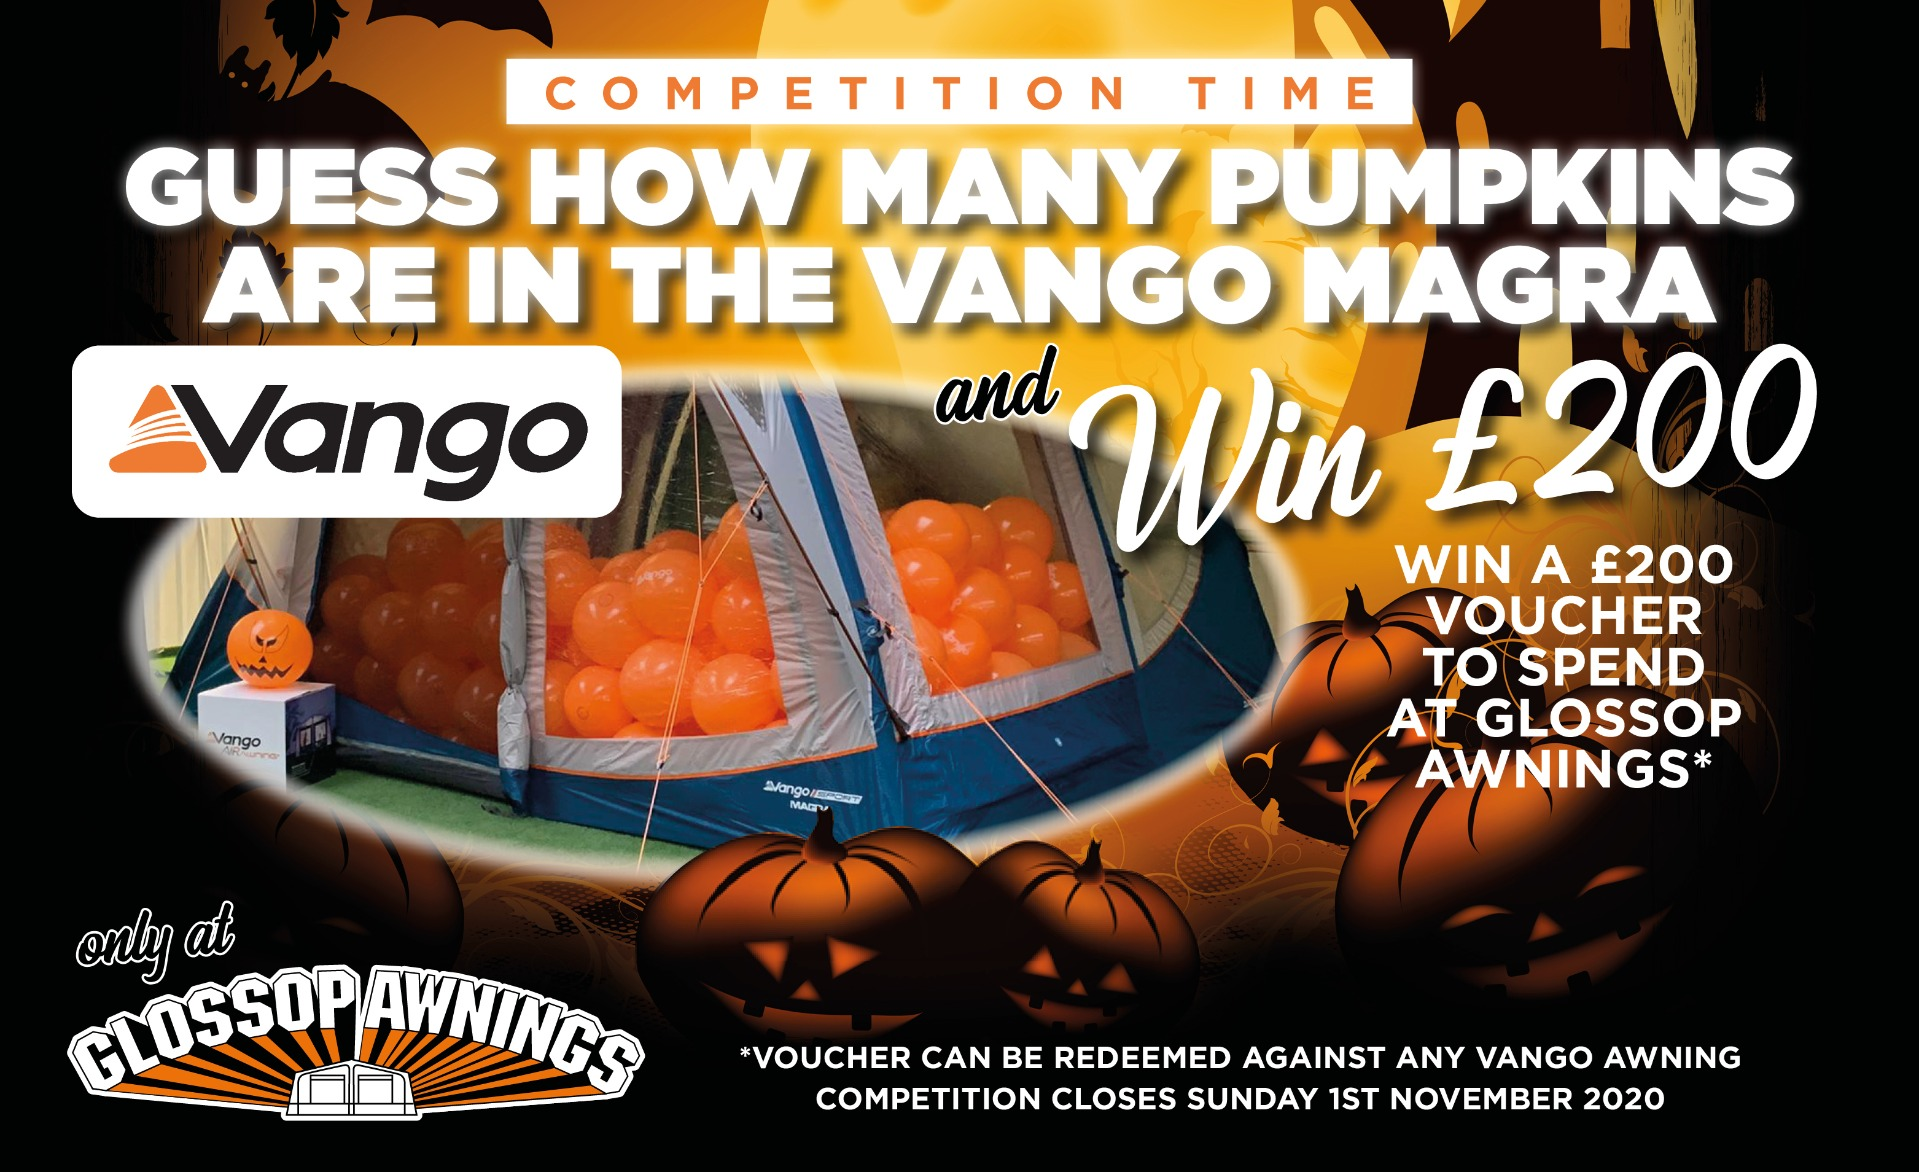 Vango_Pumpkin_Competition